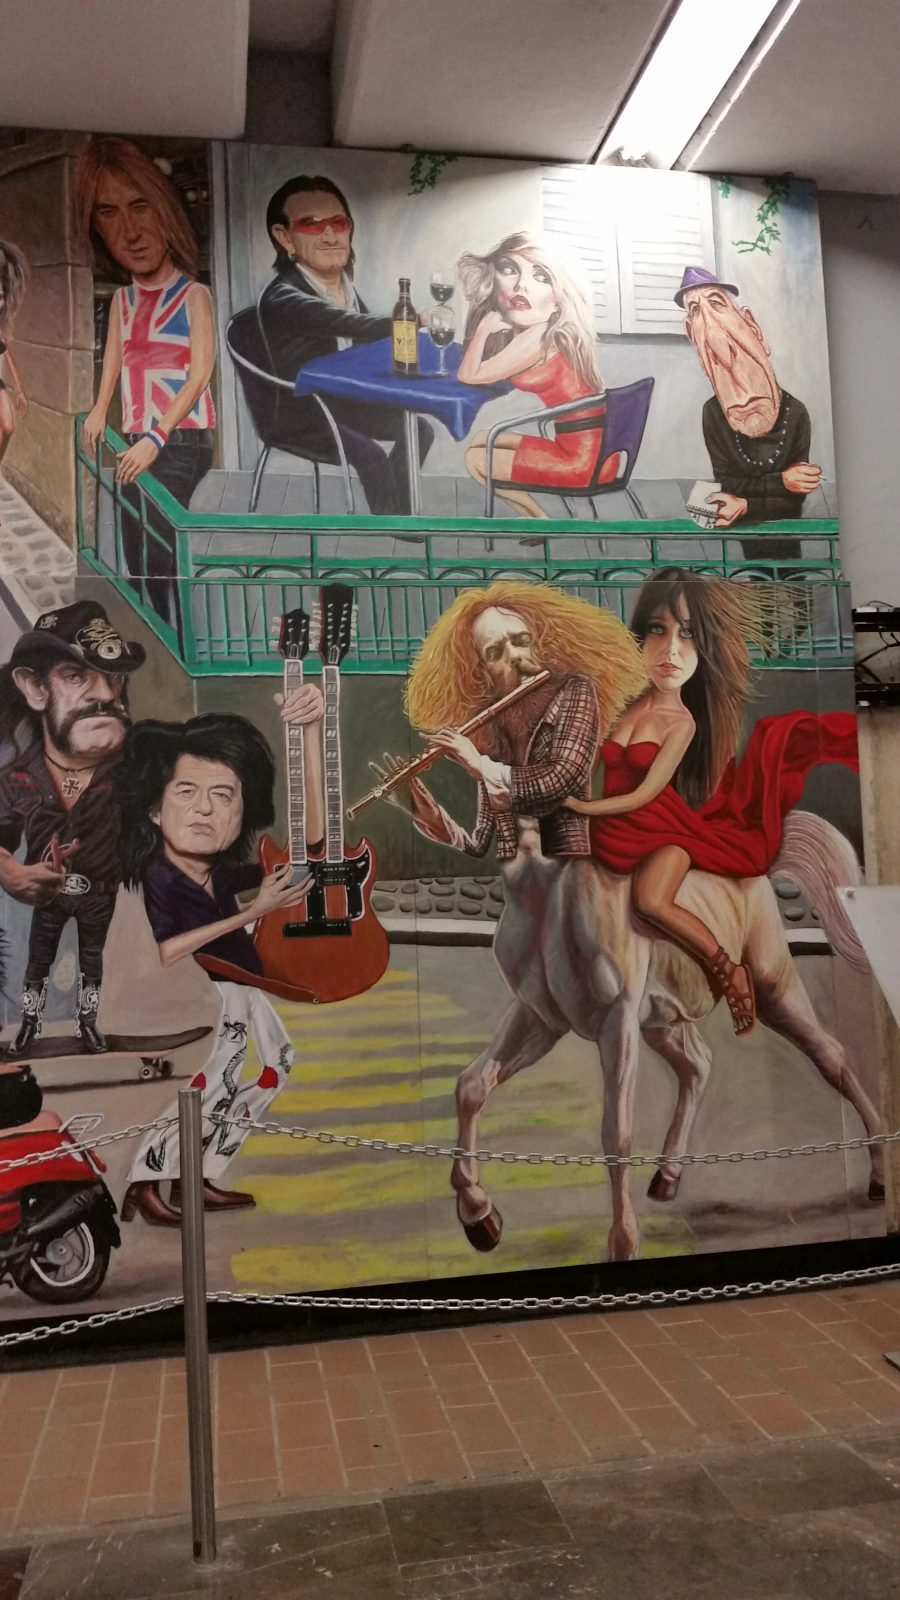 A view of the famous rock 'n roll murals in Auditorio Metro Station in Mexico City painted by artist Jorge Manjarrez showing Jimmy Page.